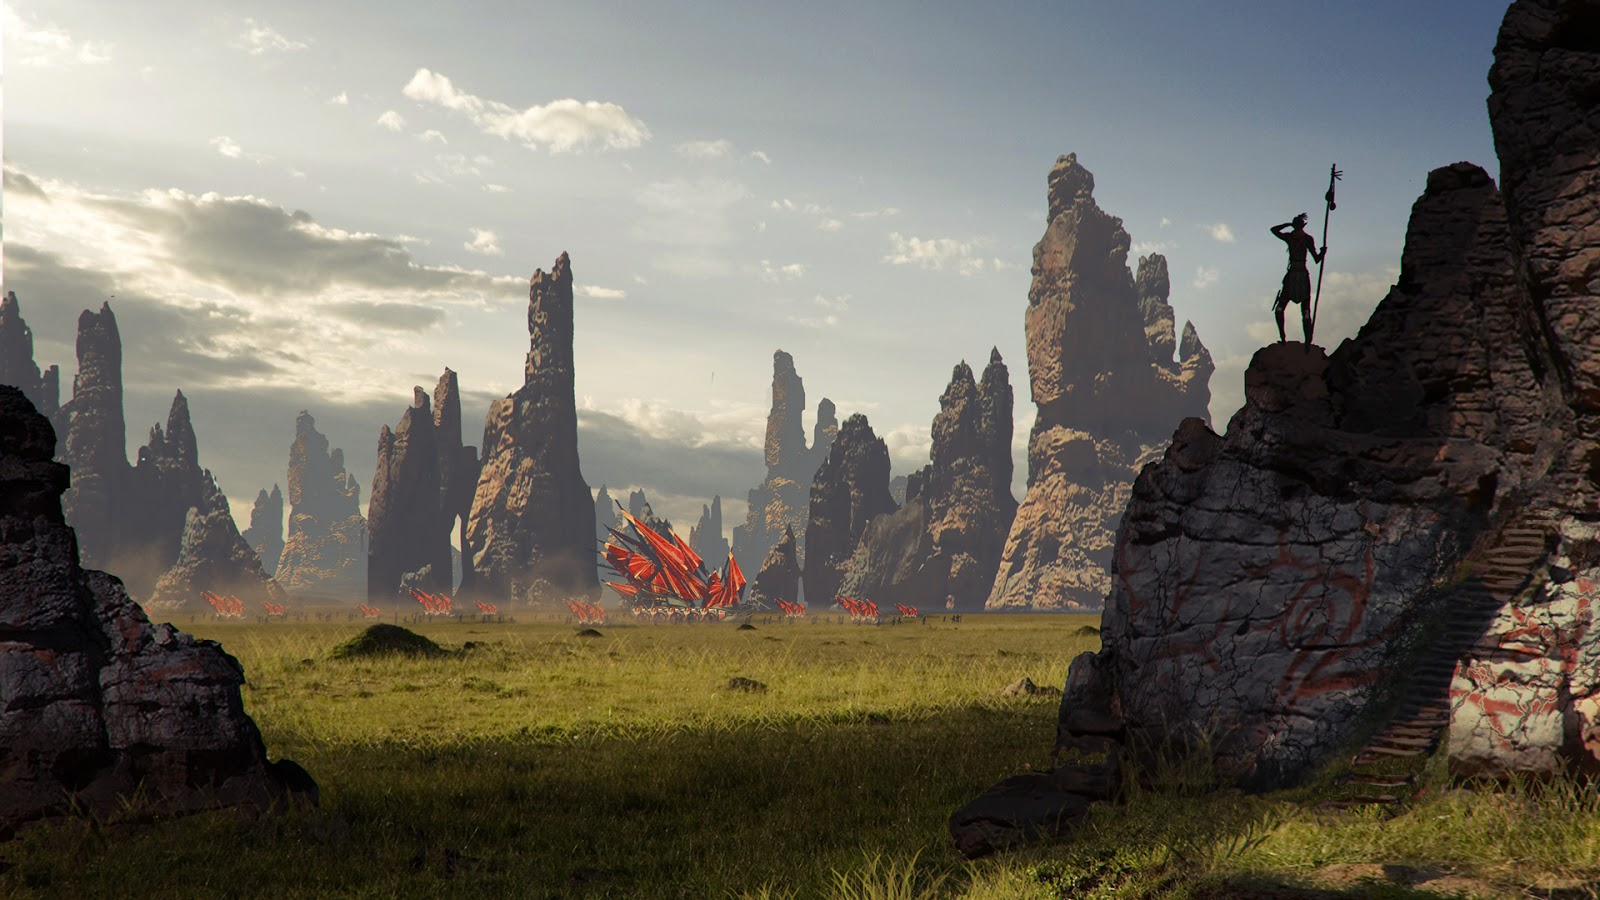 The geeky nerfherder dragon age iii inquisition concept art